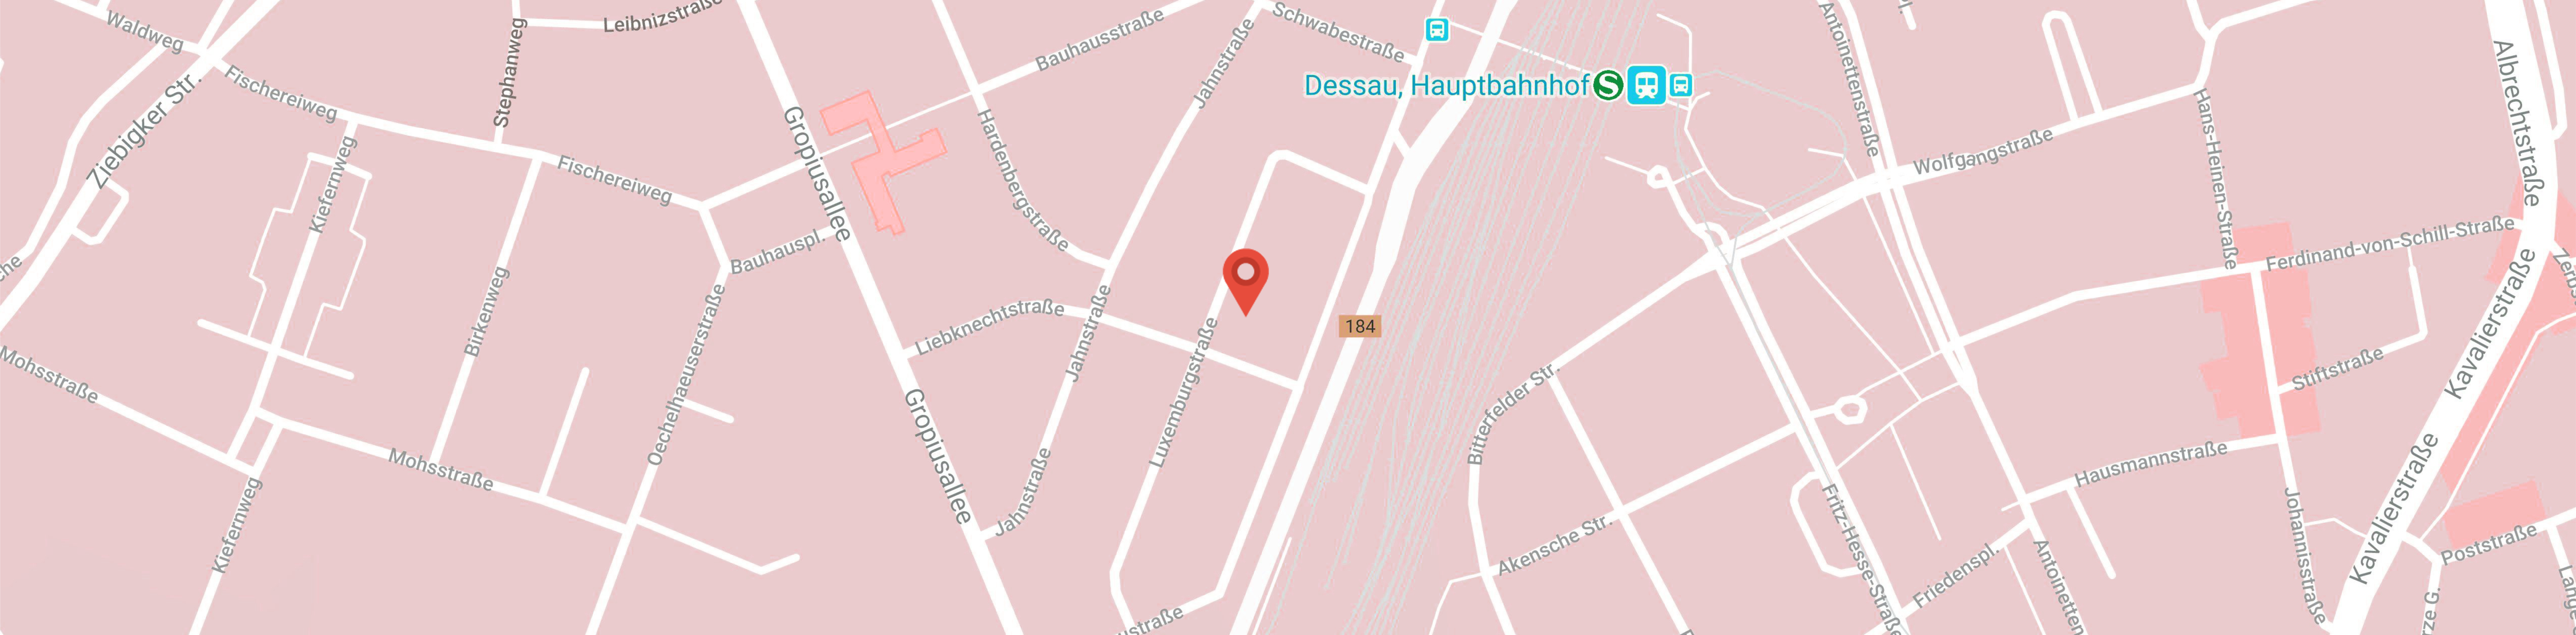 Advertise Dessau in Google Maps finden.